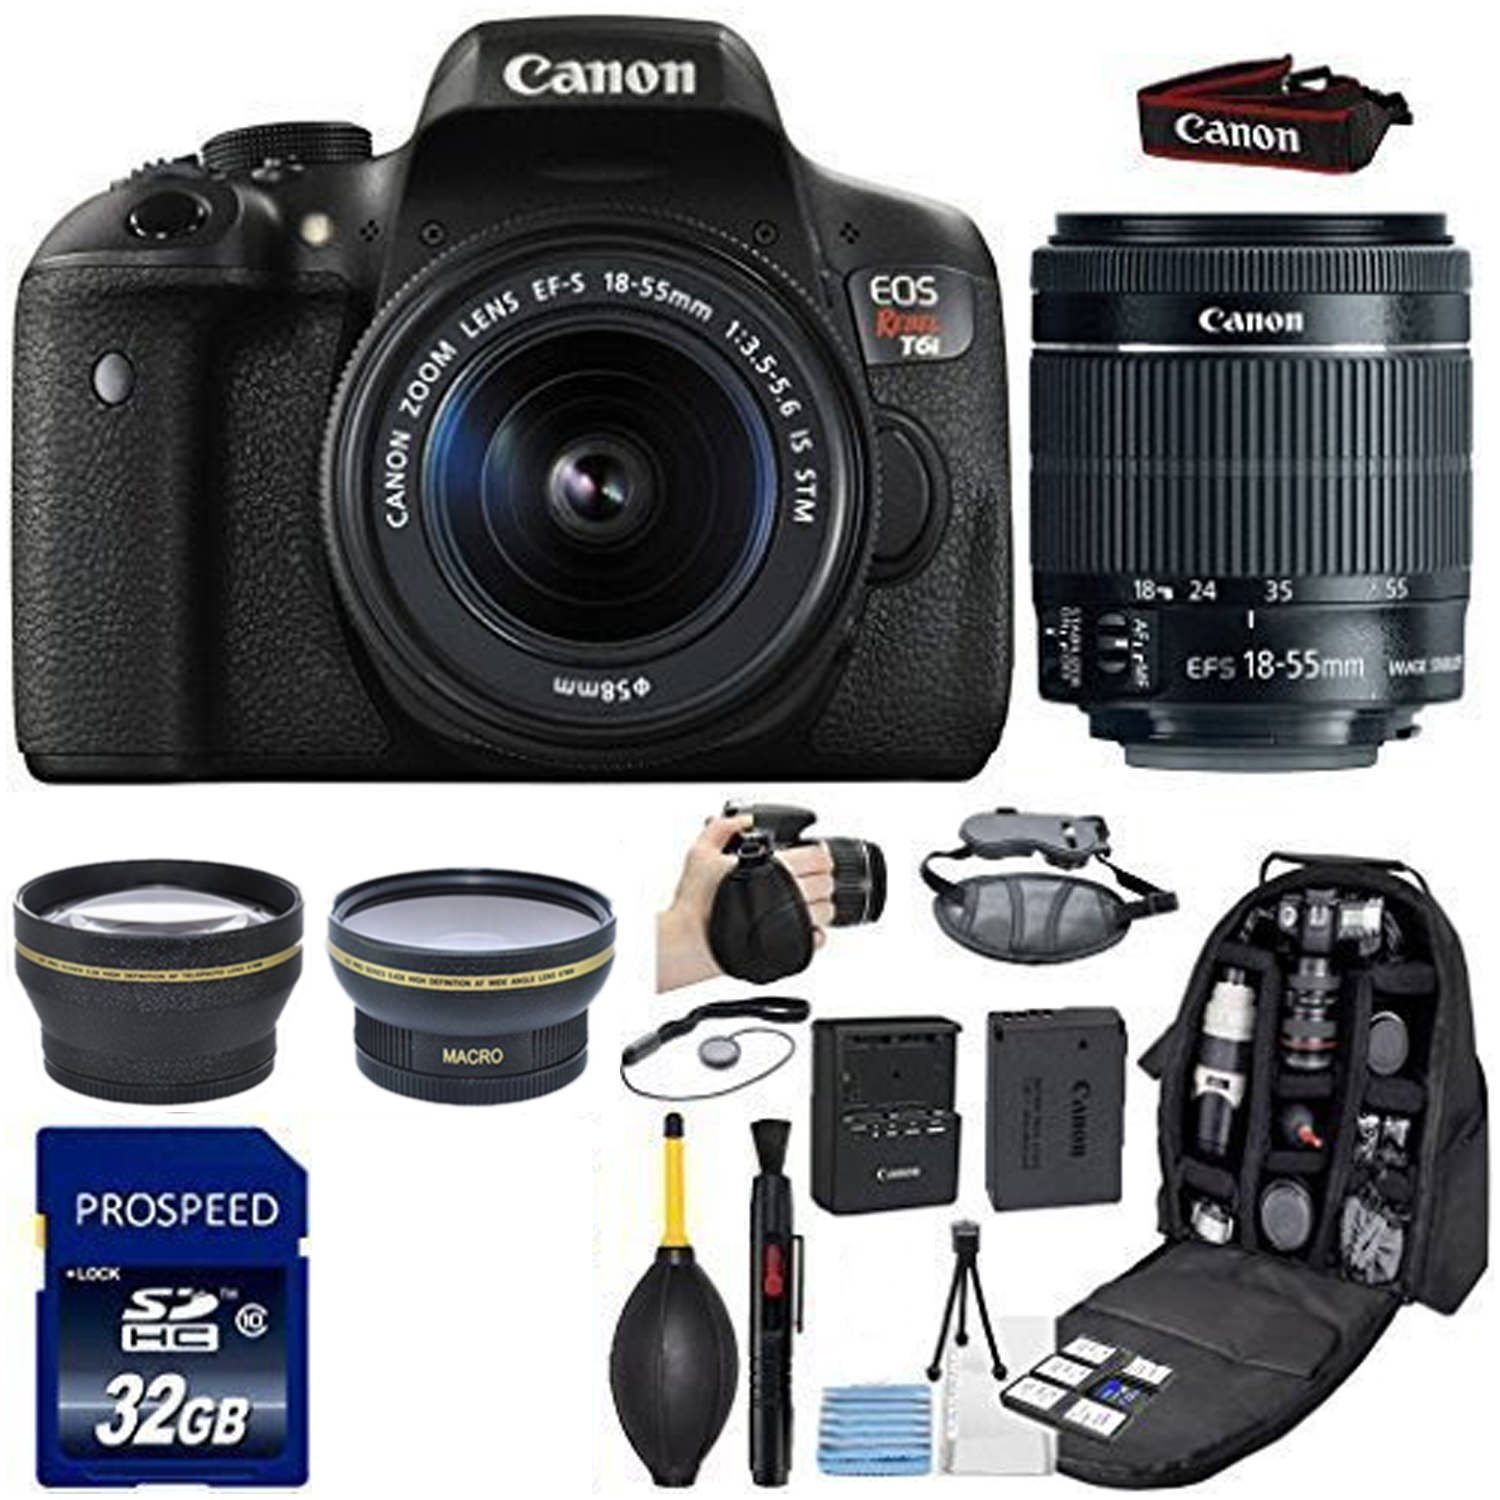 Canon EOS Rebel T6i DSLR Camera with 18-55mm IS STM Lens + Kit Includes 58mm HD Wide Angle + 2.2x Telephoto Lens + SanDisk Ultra 32GB SDHC Class 10 UHS-1 + Backpack Case + Grip Strap + Cleaning Kit